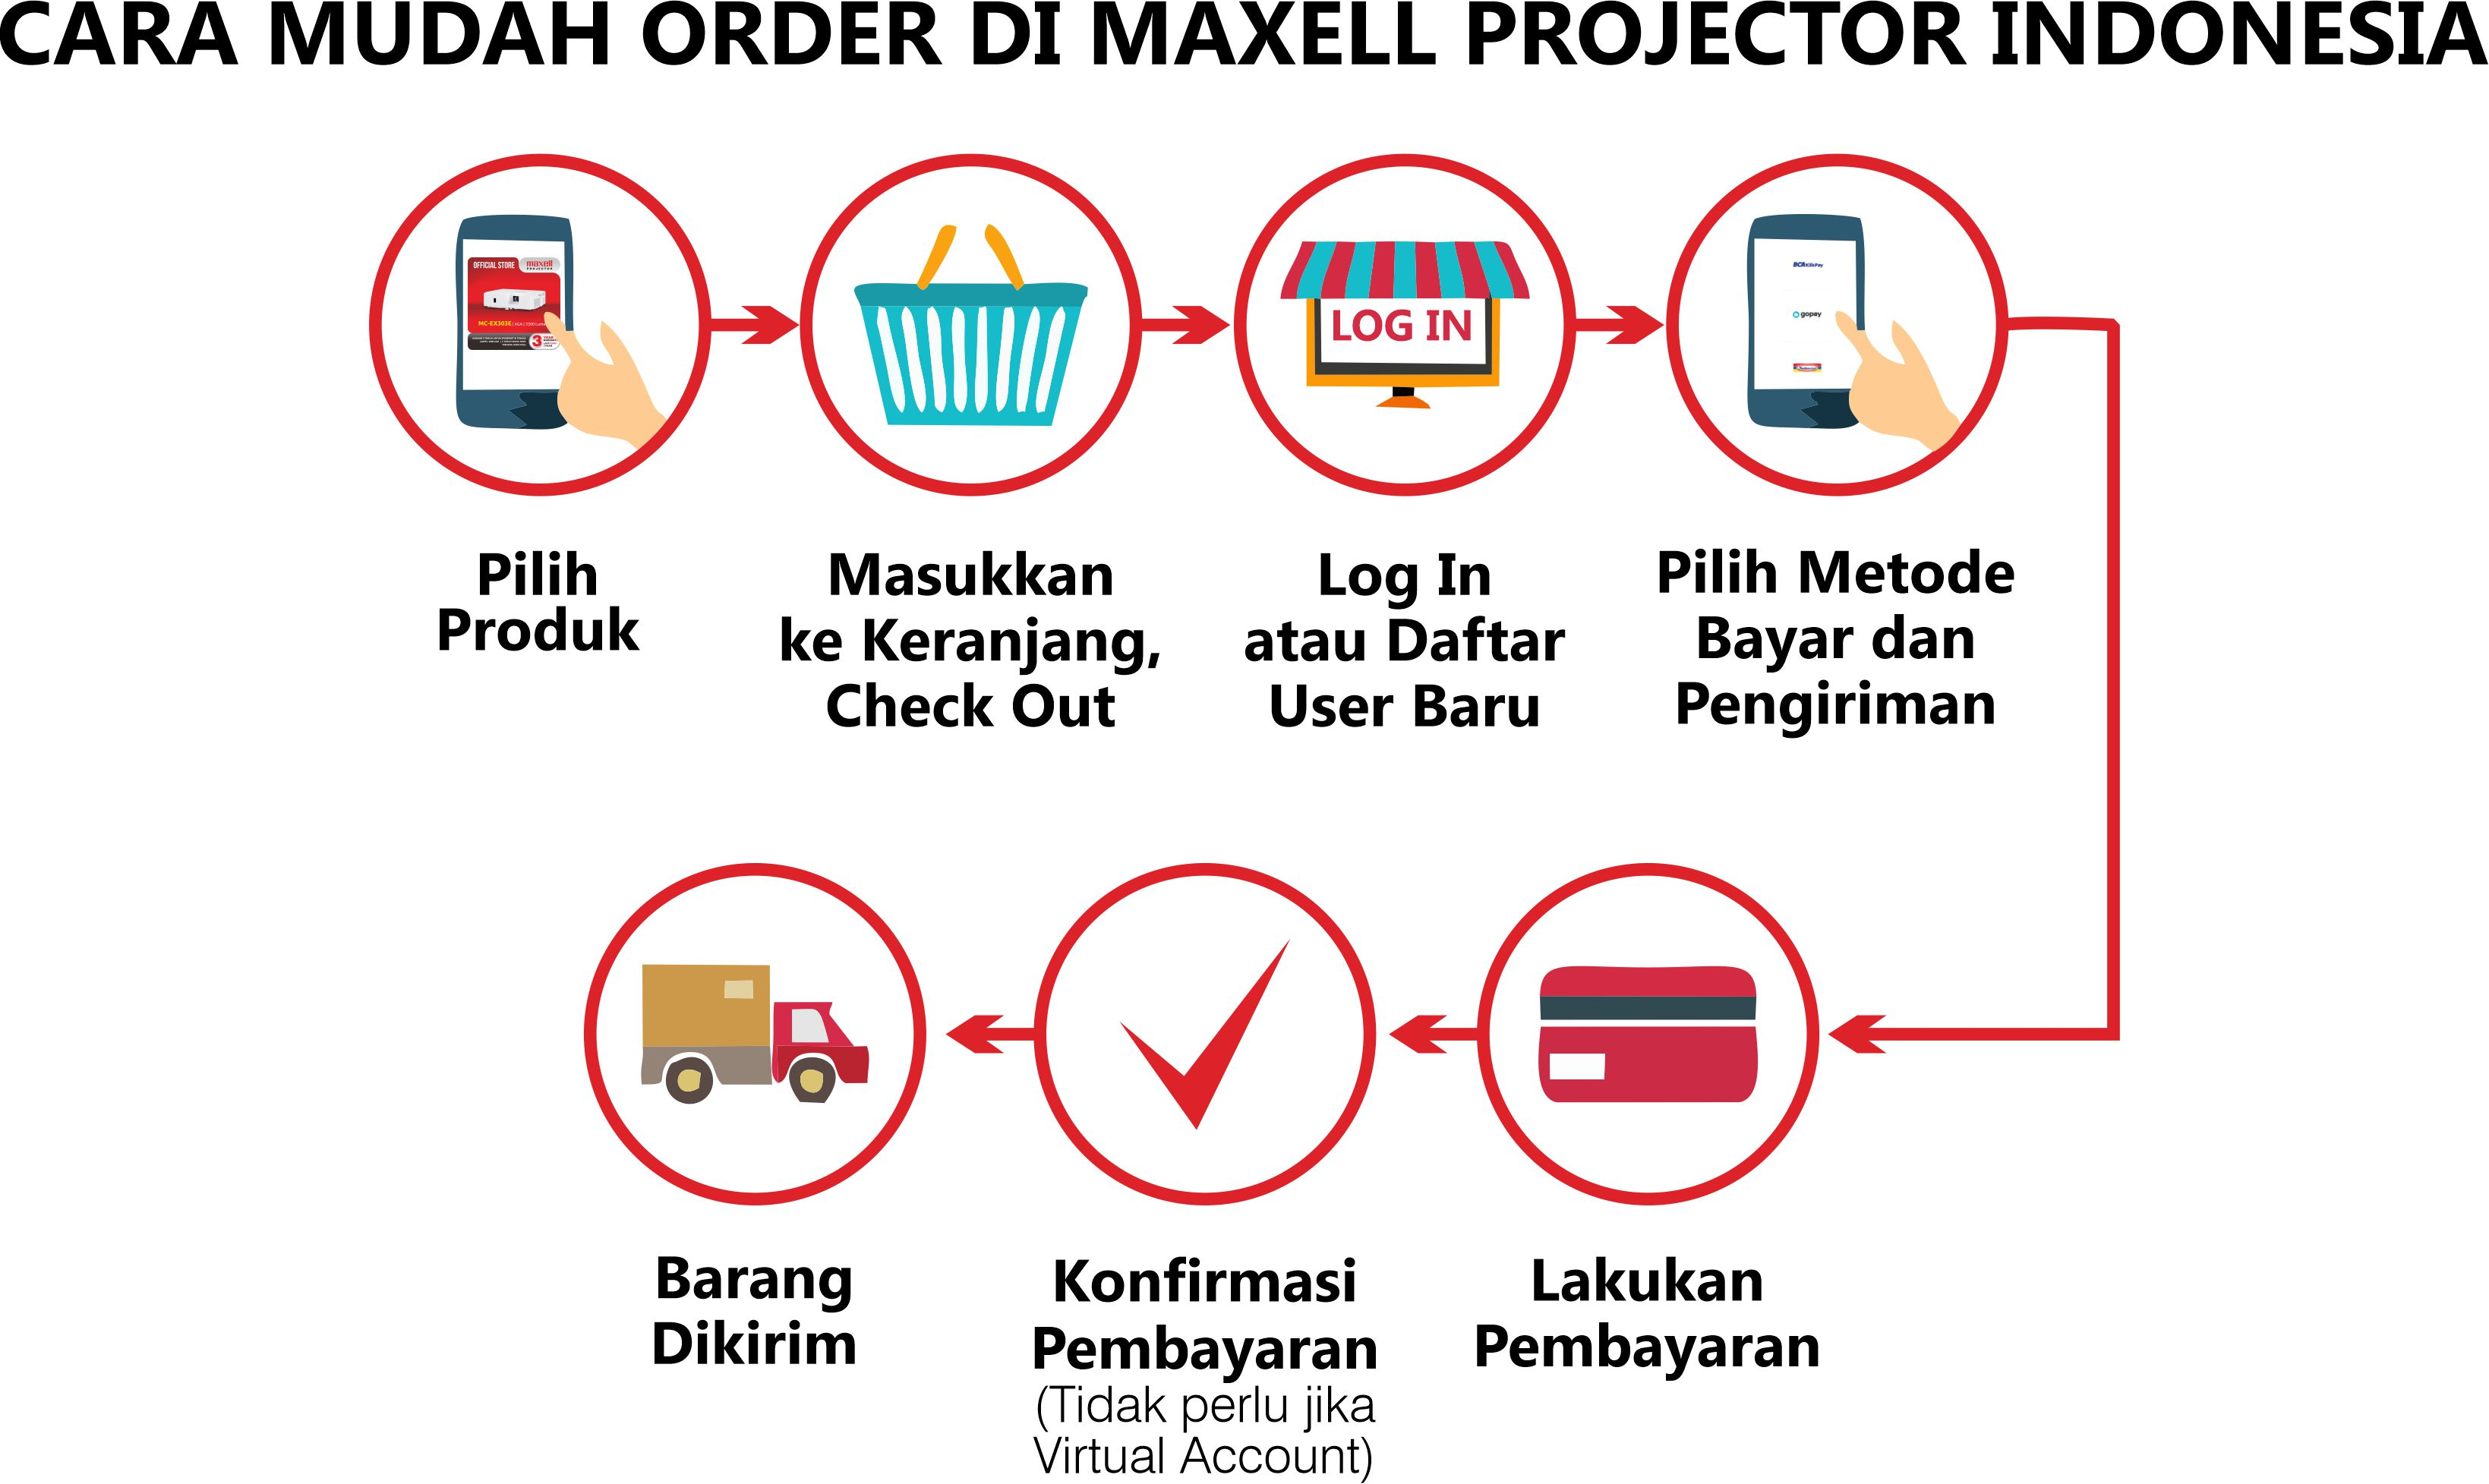 How to Order Maxell Projector